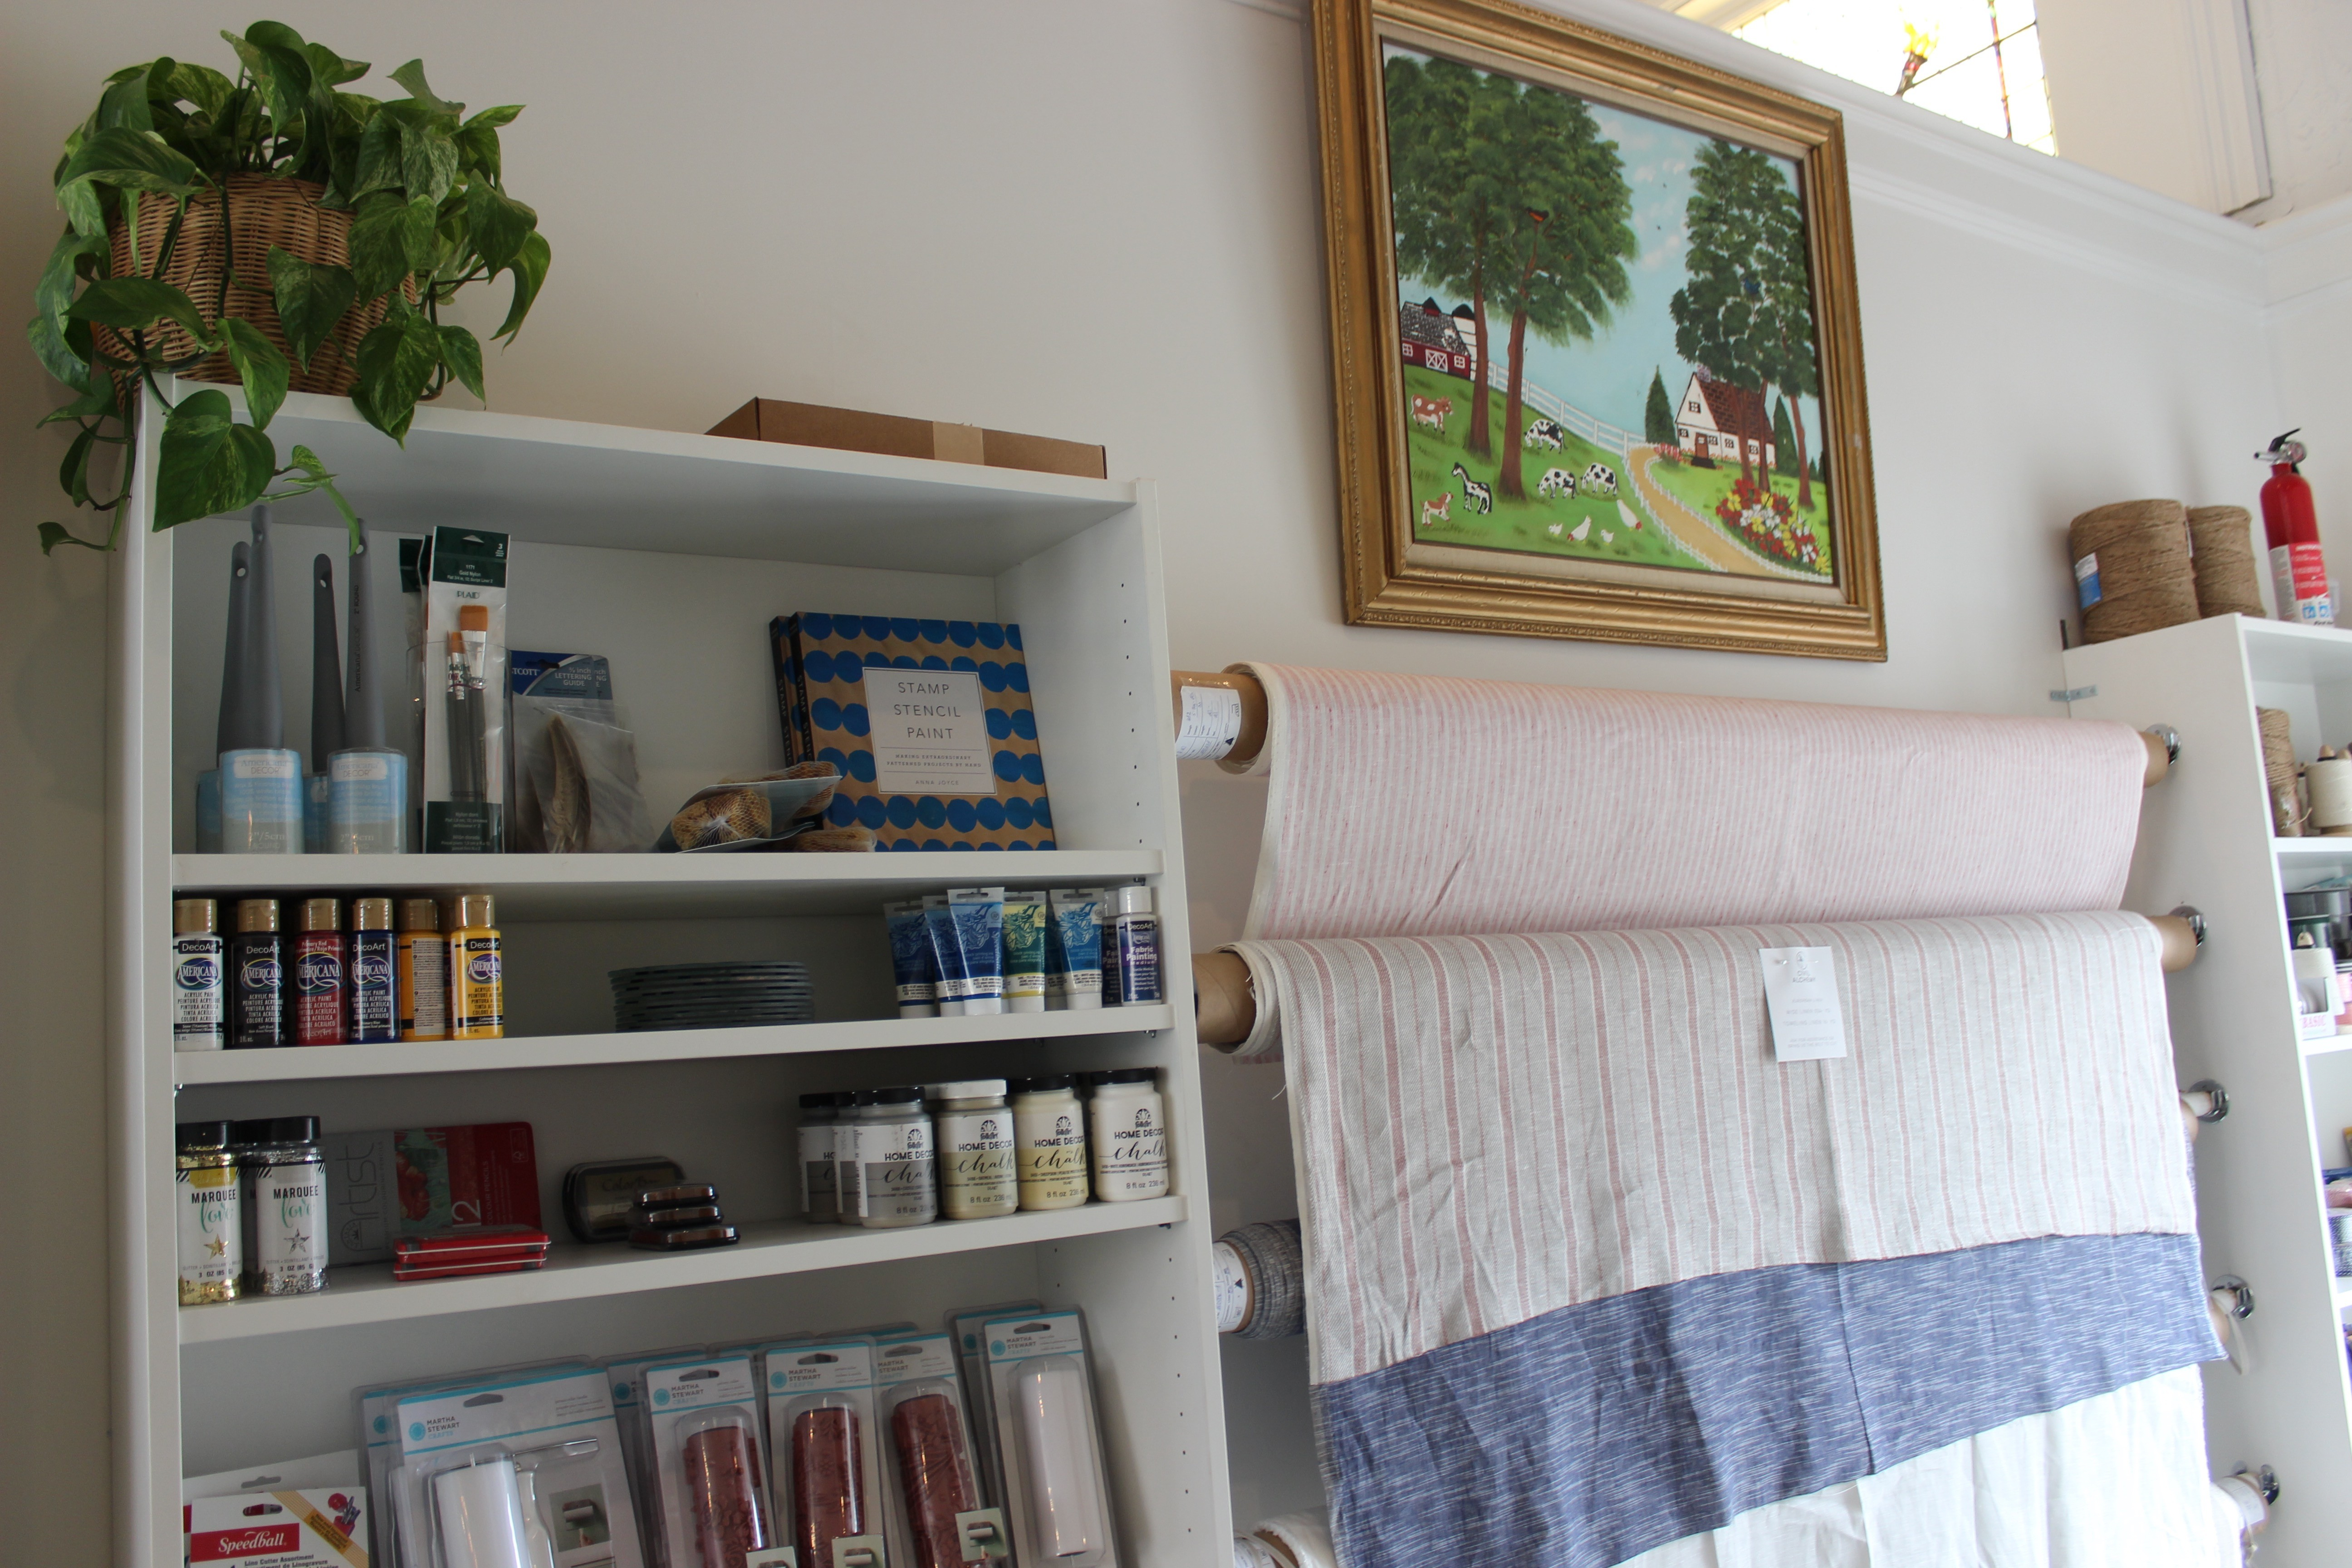 The Little Shop Peinture civil alchemy offers a little bit of everything in webster